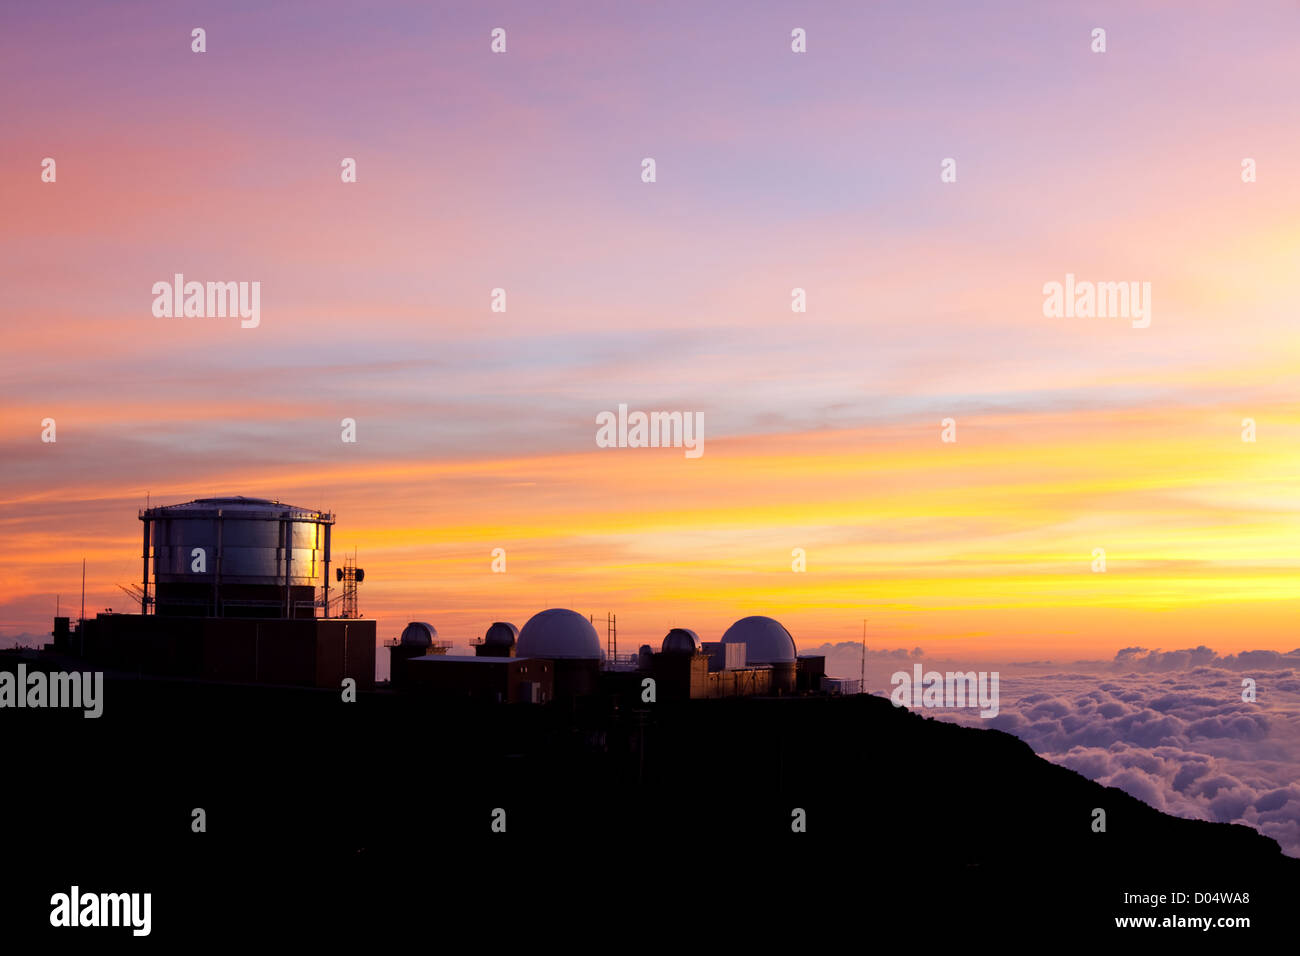 Observatoires Haleakala sur île de Maui Hawaii Photo Stock